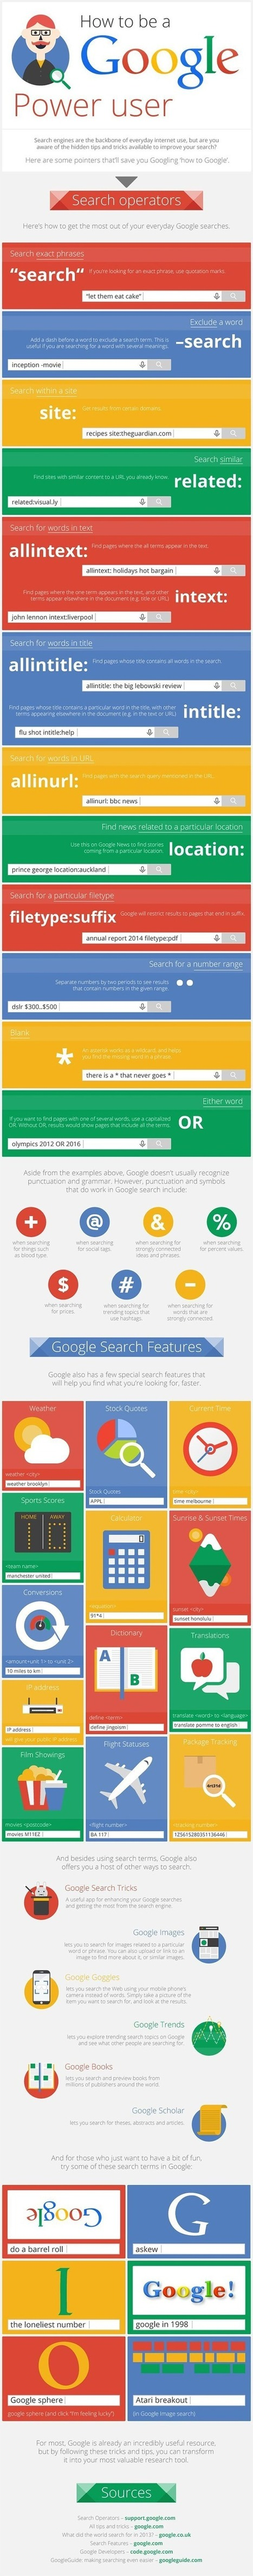 46 Hidden Tips and Tricks to Use Google Search Like a Boss: Infographic | social media infographics and typography | Scoop.it